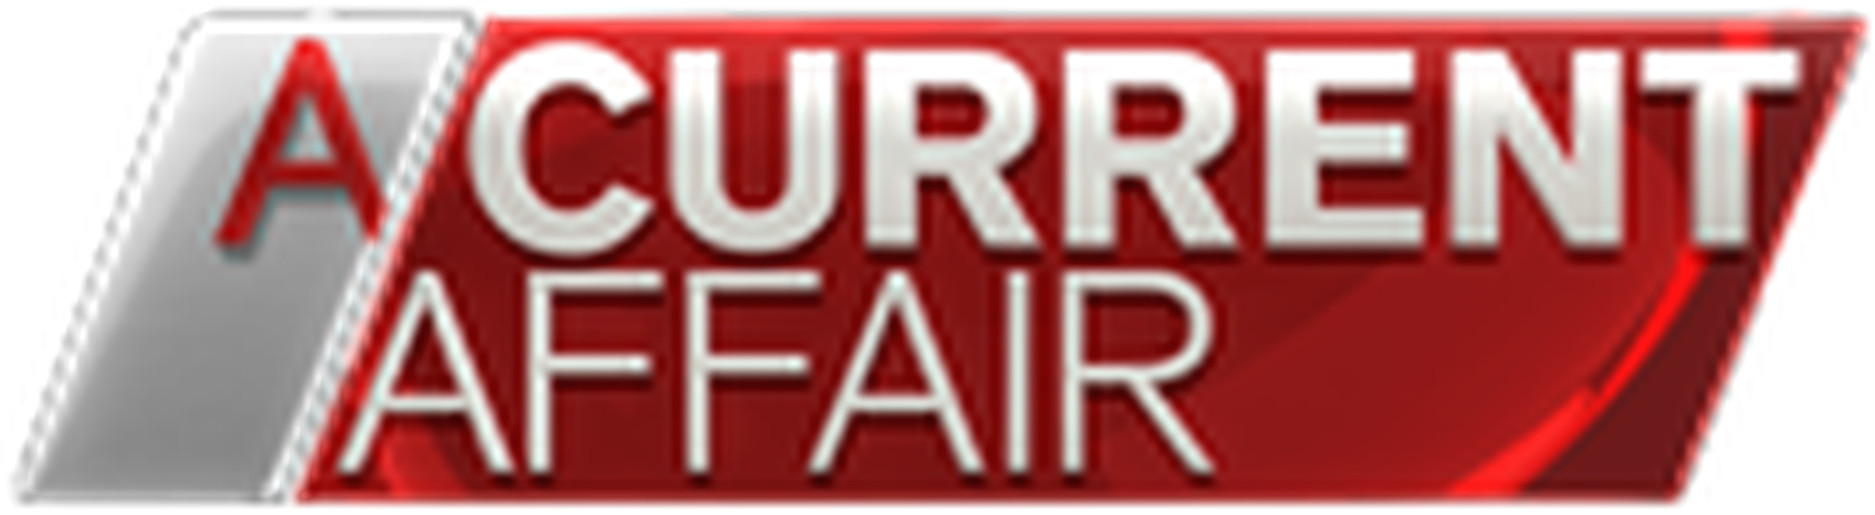 Australia's 9 News' A Current Affair ID From 2012